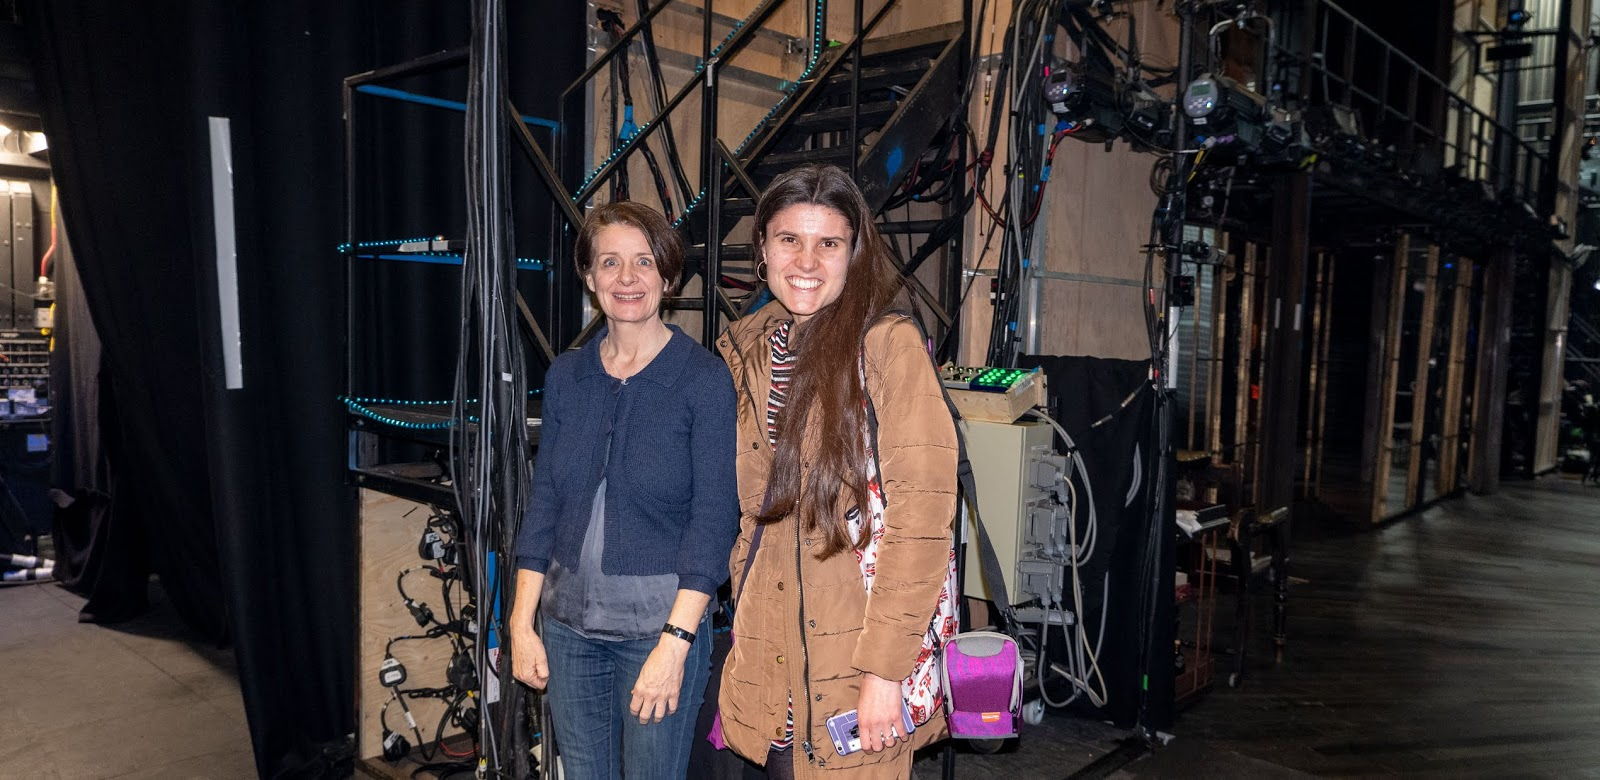 Kat Last and Company Manager Linda Fitzpatrick, backstage at The Marlowe Theatre on Measure For Measure opening night